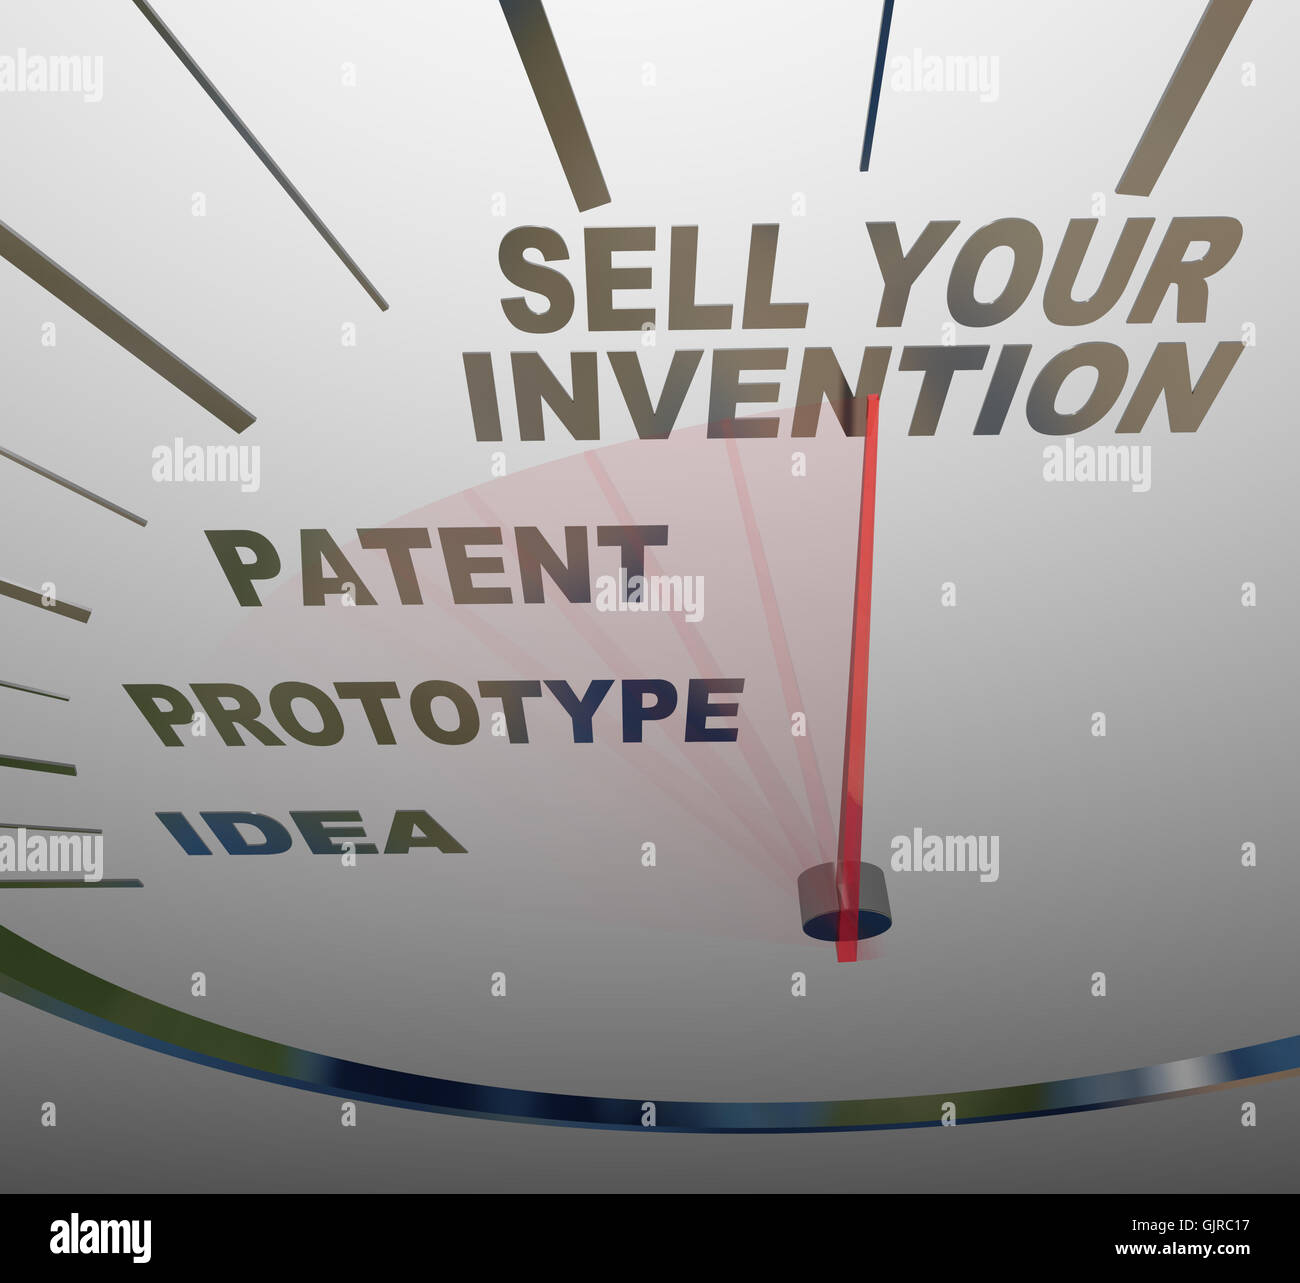 Sell Your Invention Words on Speedometer Steps for Inventing - Stock Image